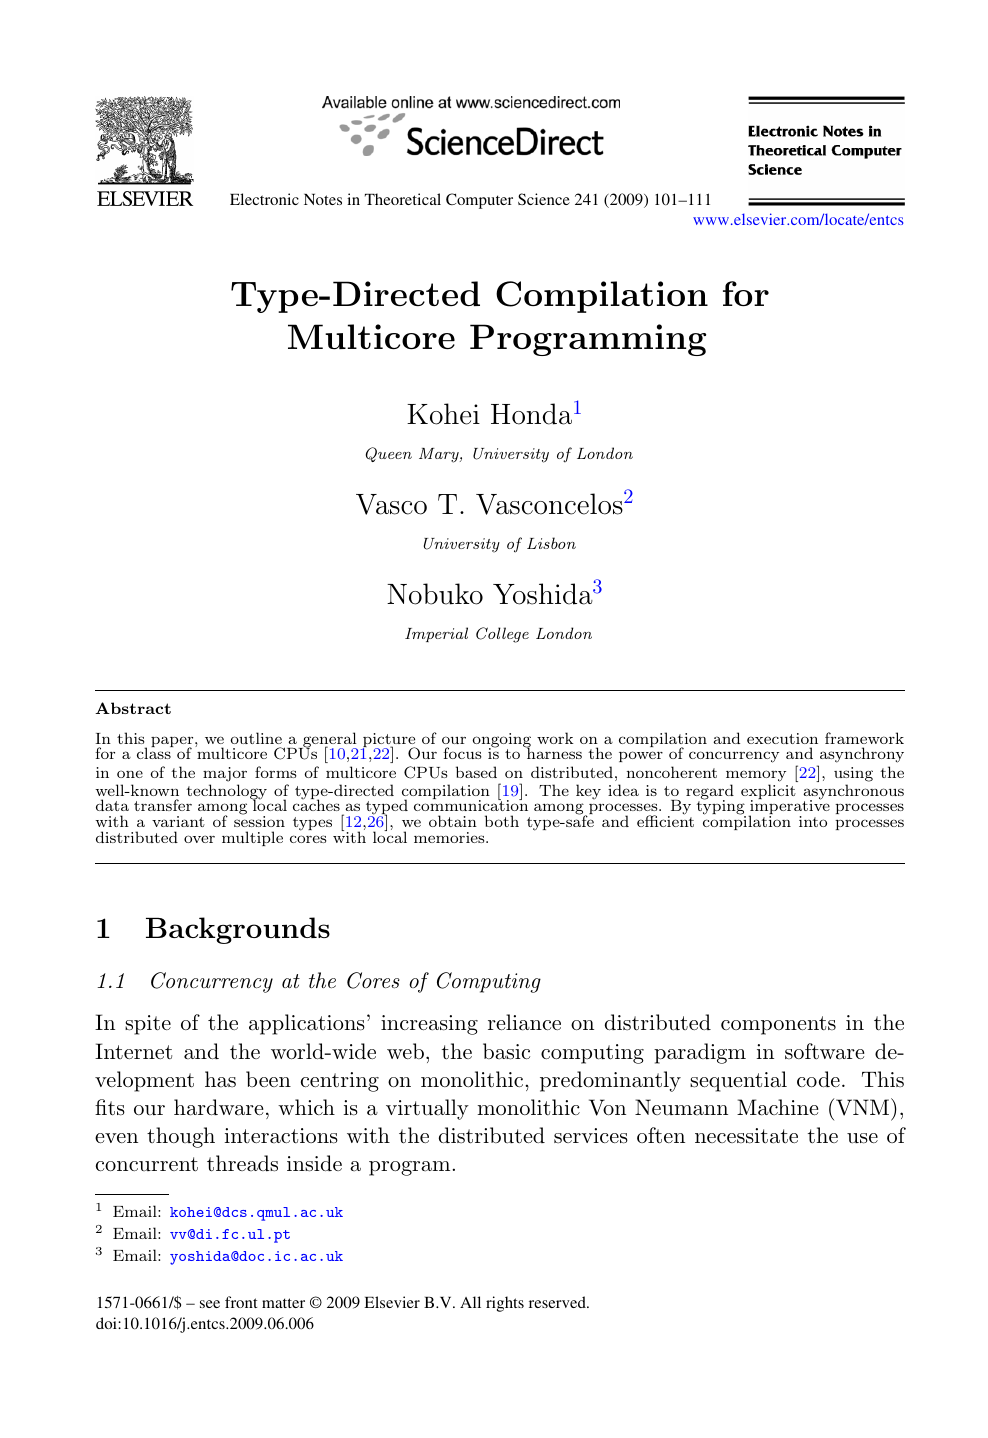 Type-Directed Compilation for Multicore Programming – topic